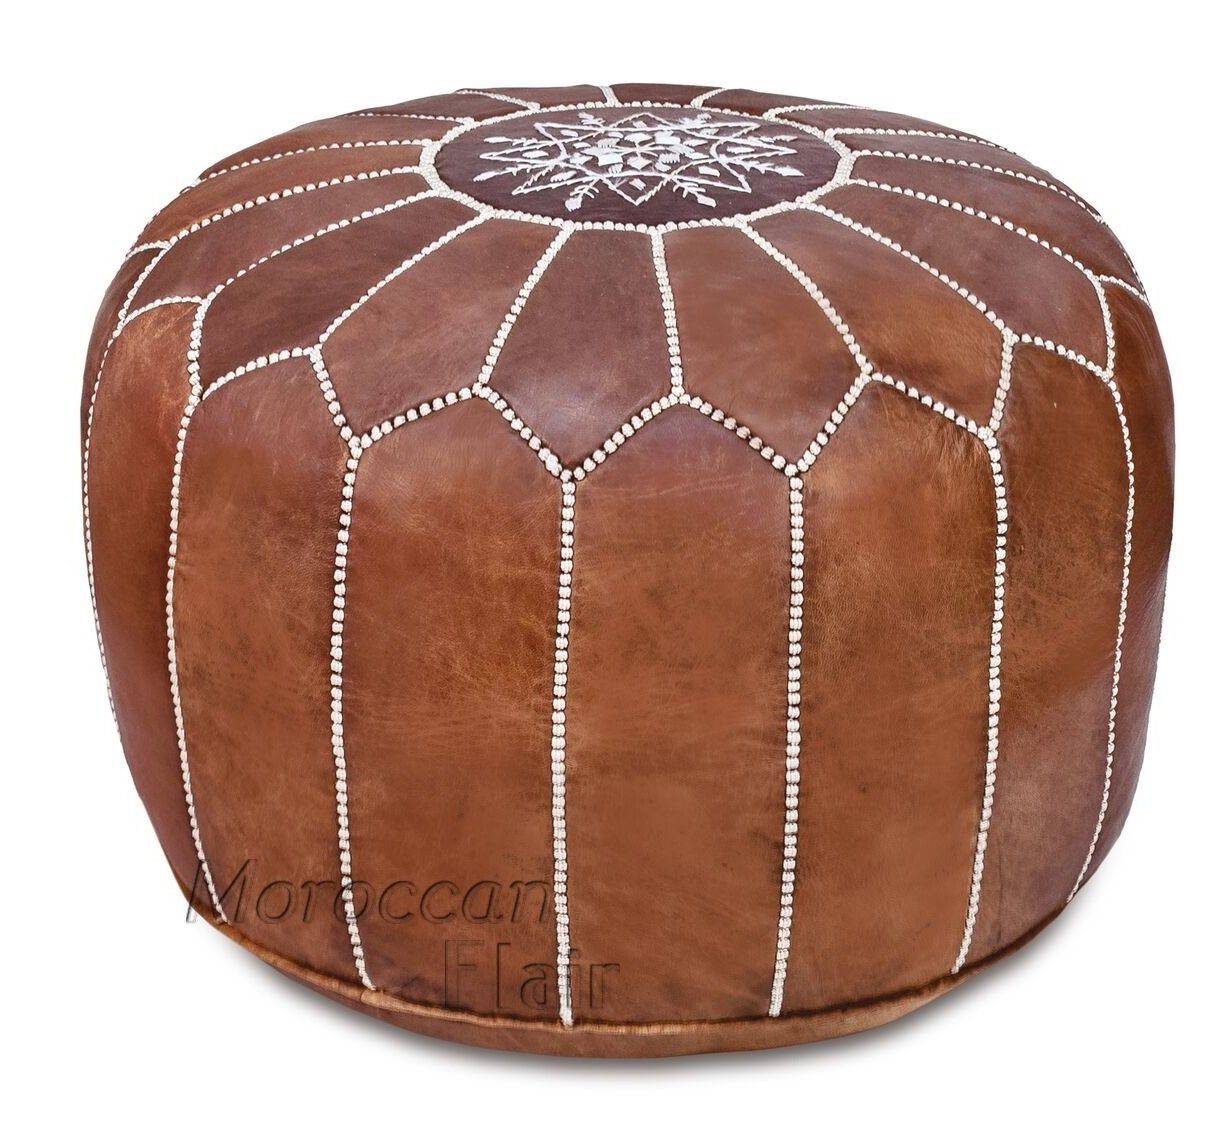 Stuffed Handmade Genuine Leather Moroccan Pouf, Ottoman (Tan) by Moroccan Flair